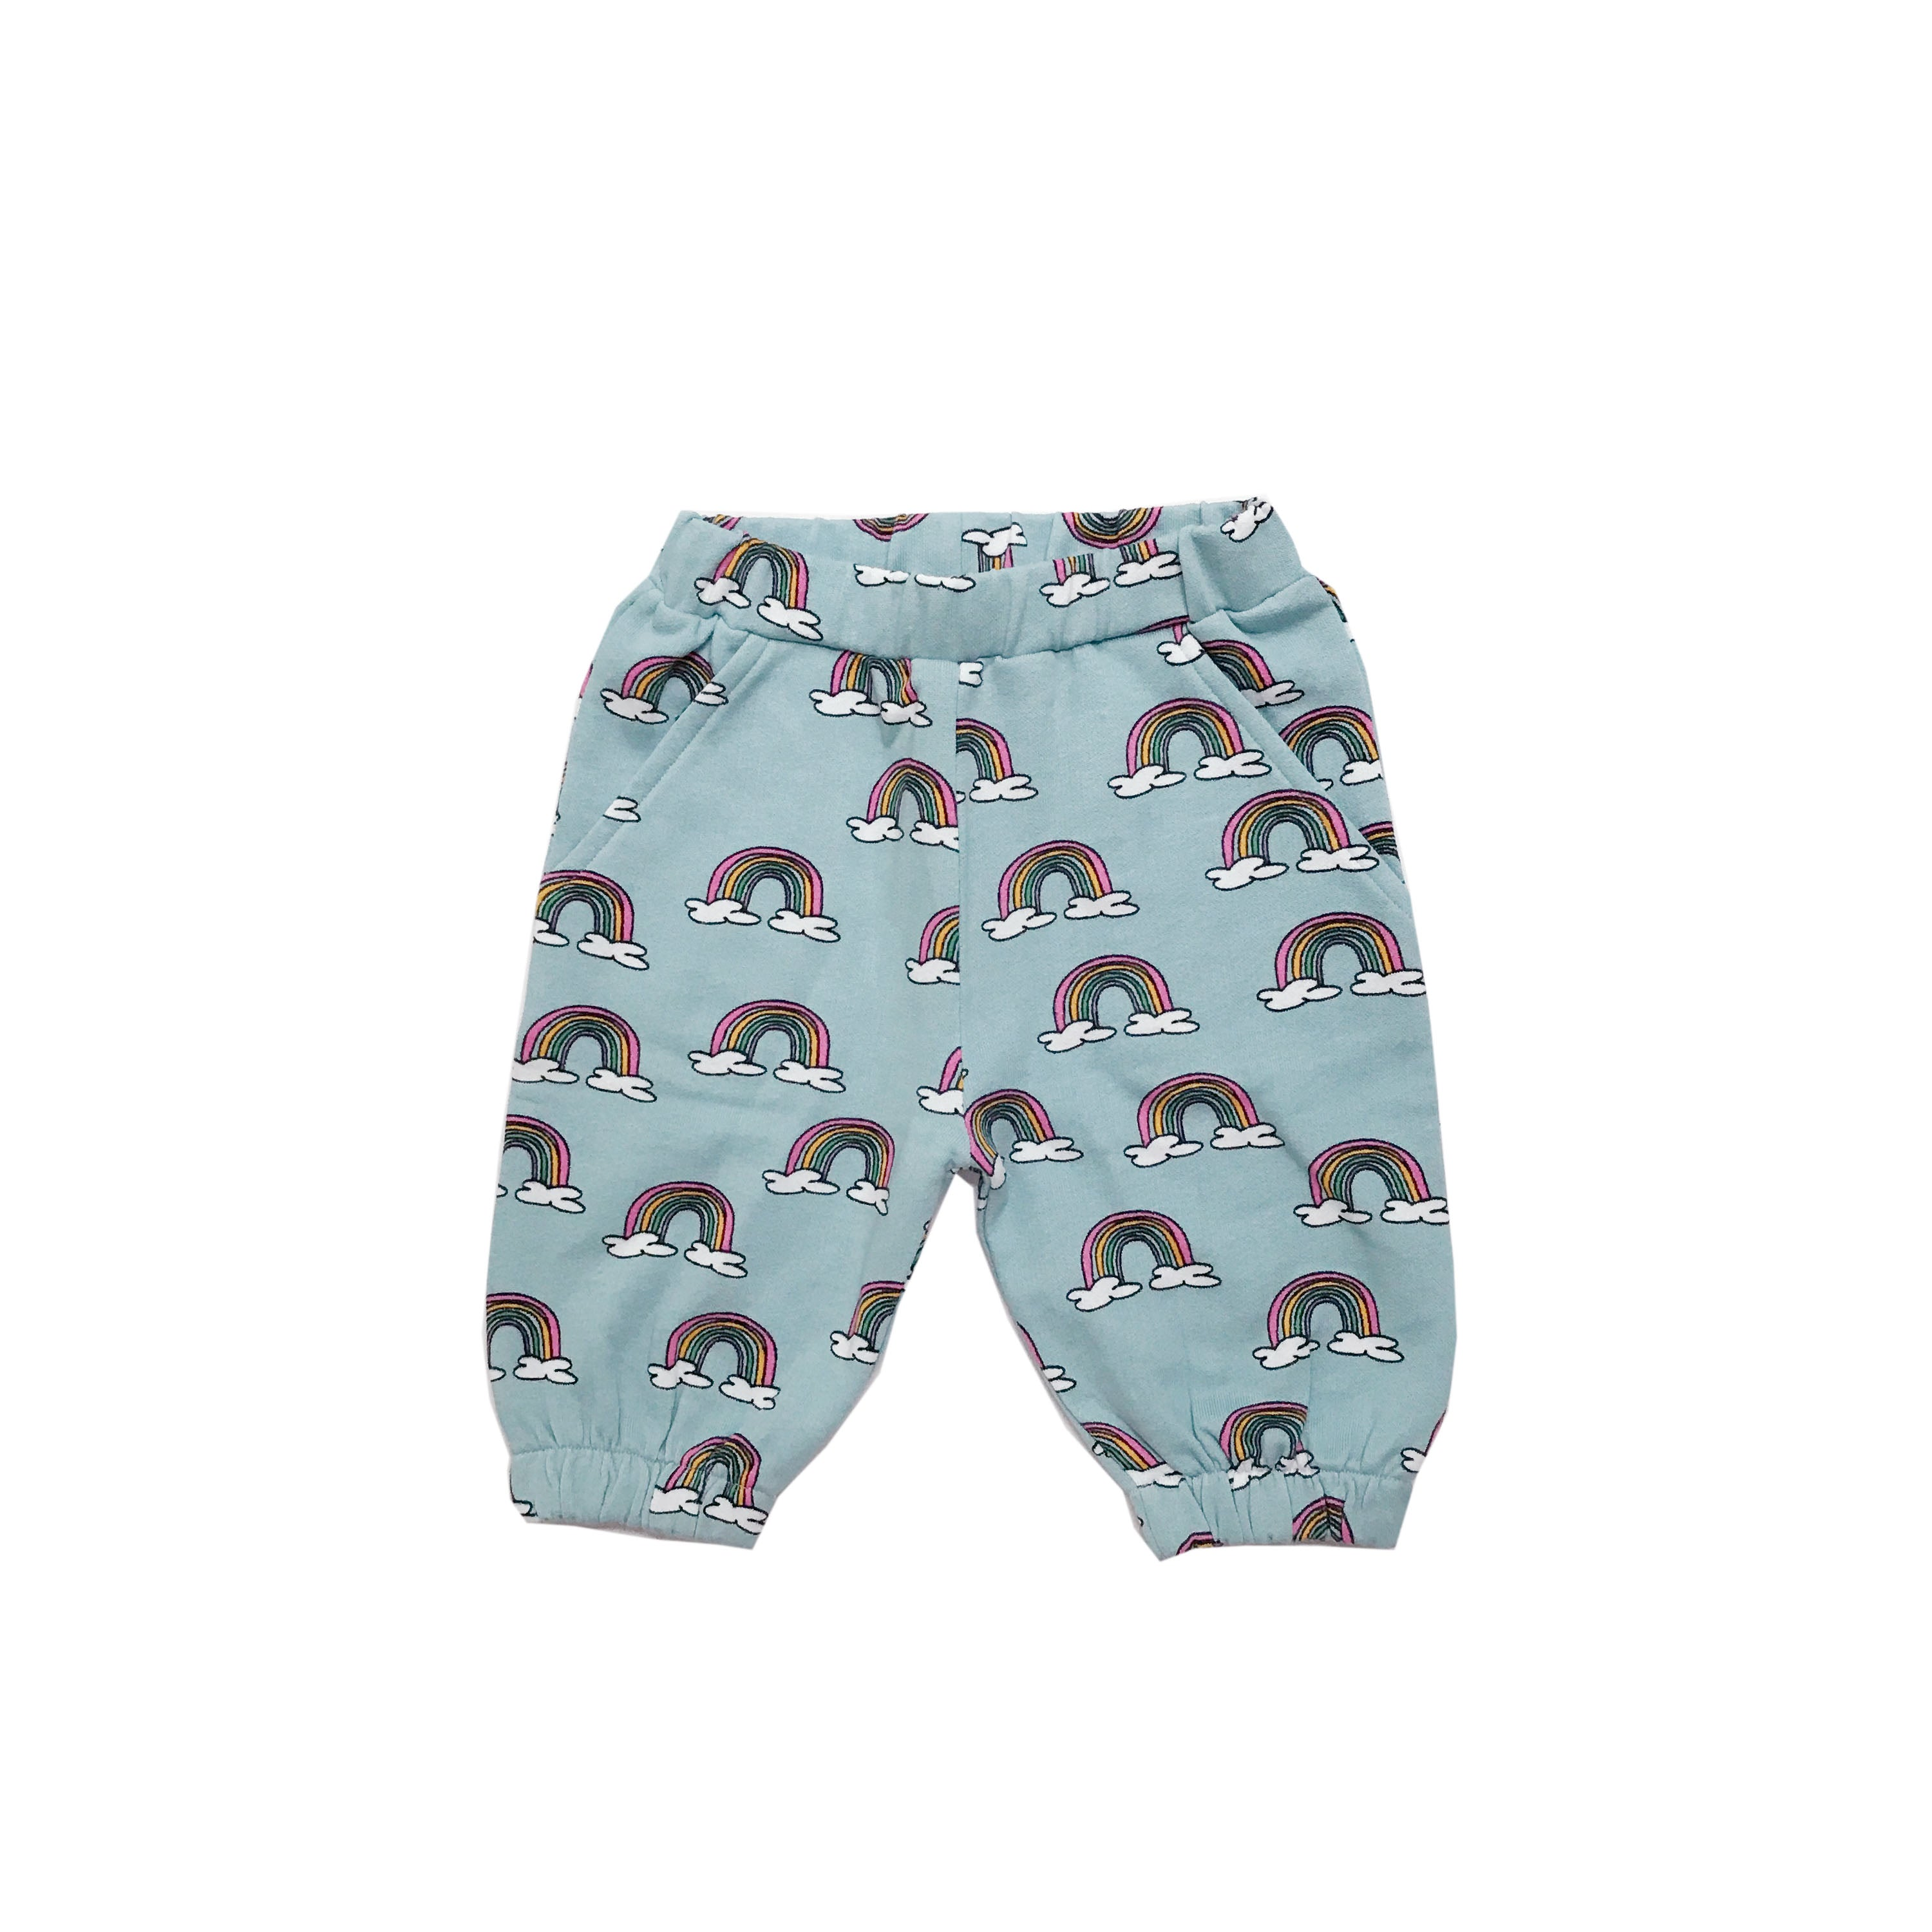 Hugo Loves Tiki : Knee sweatpants Blue Rainbows - Hugo Loves Tiki shorts